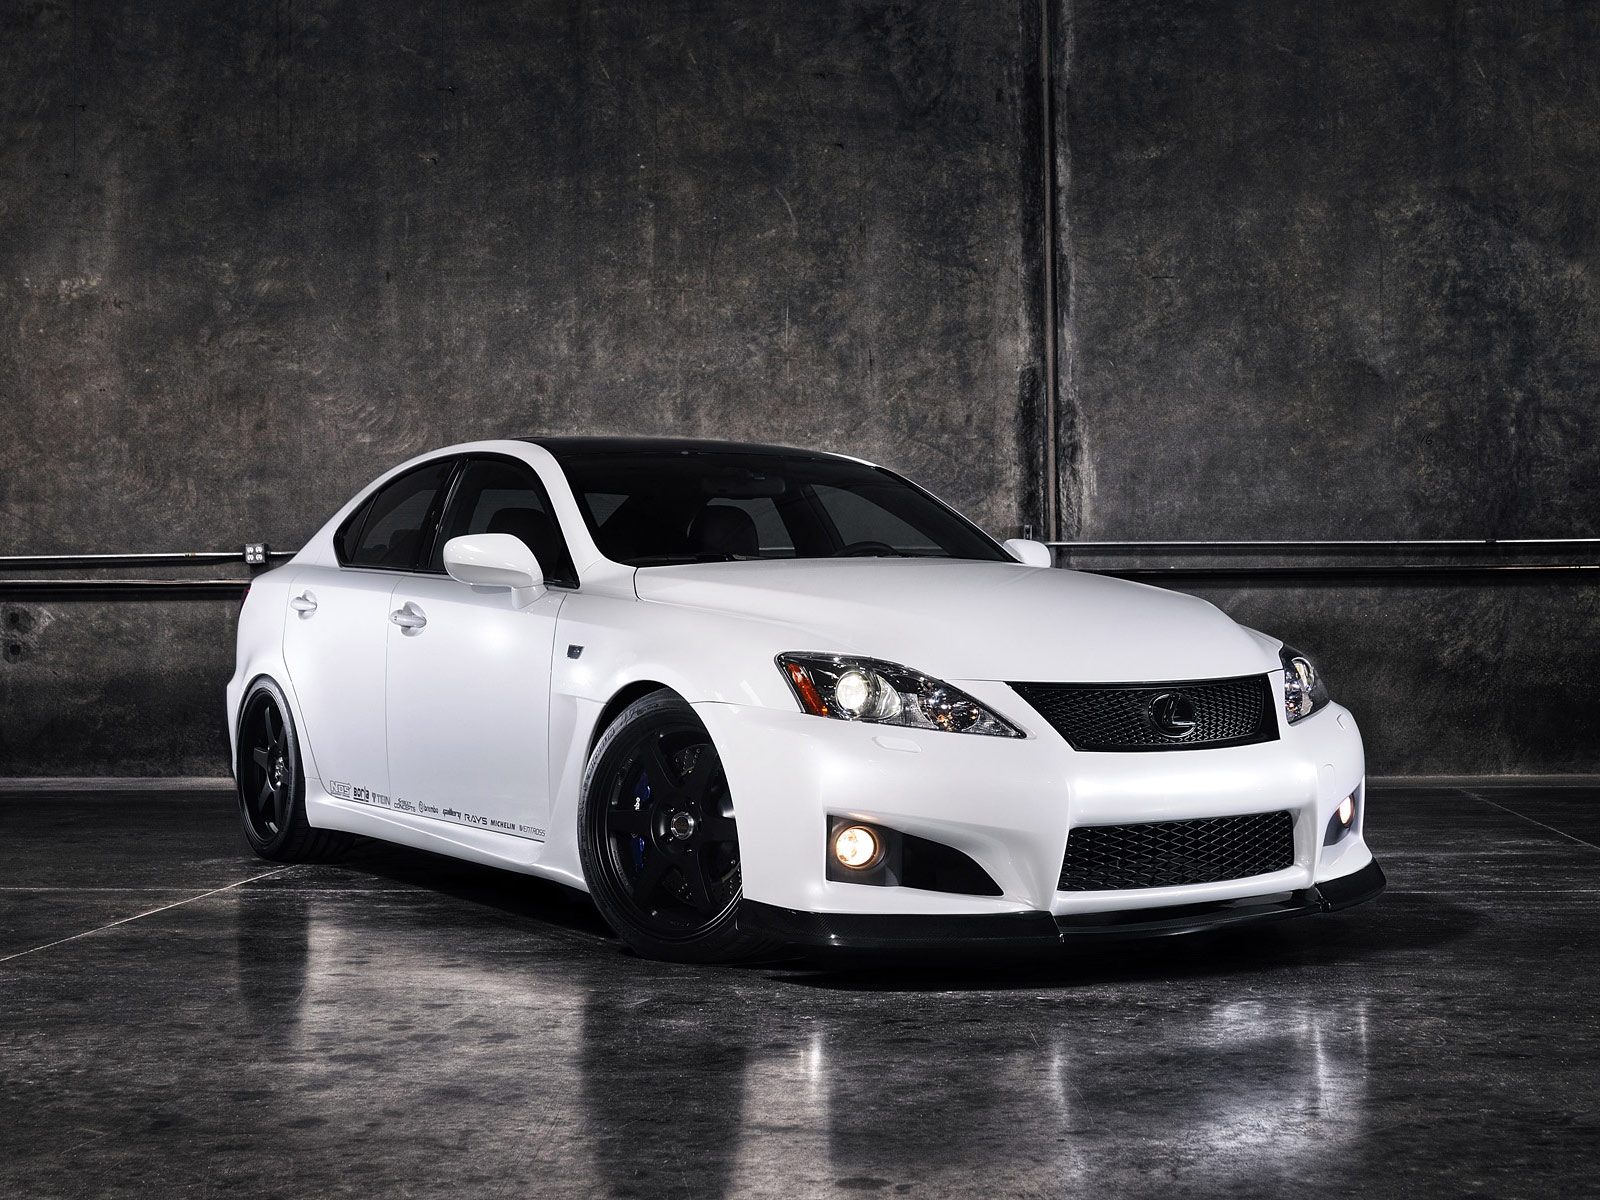 2008 Lexus Is F #4